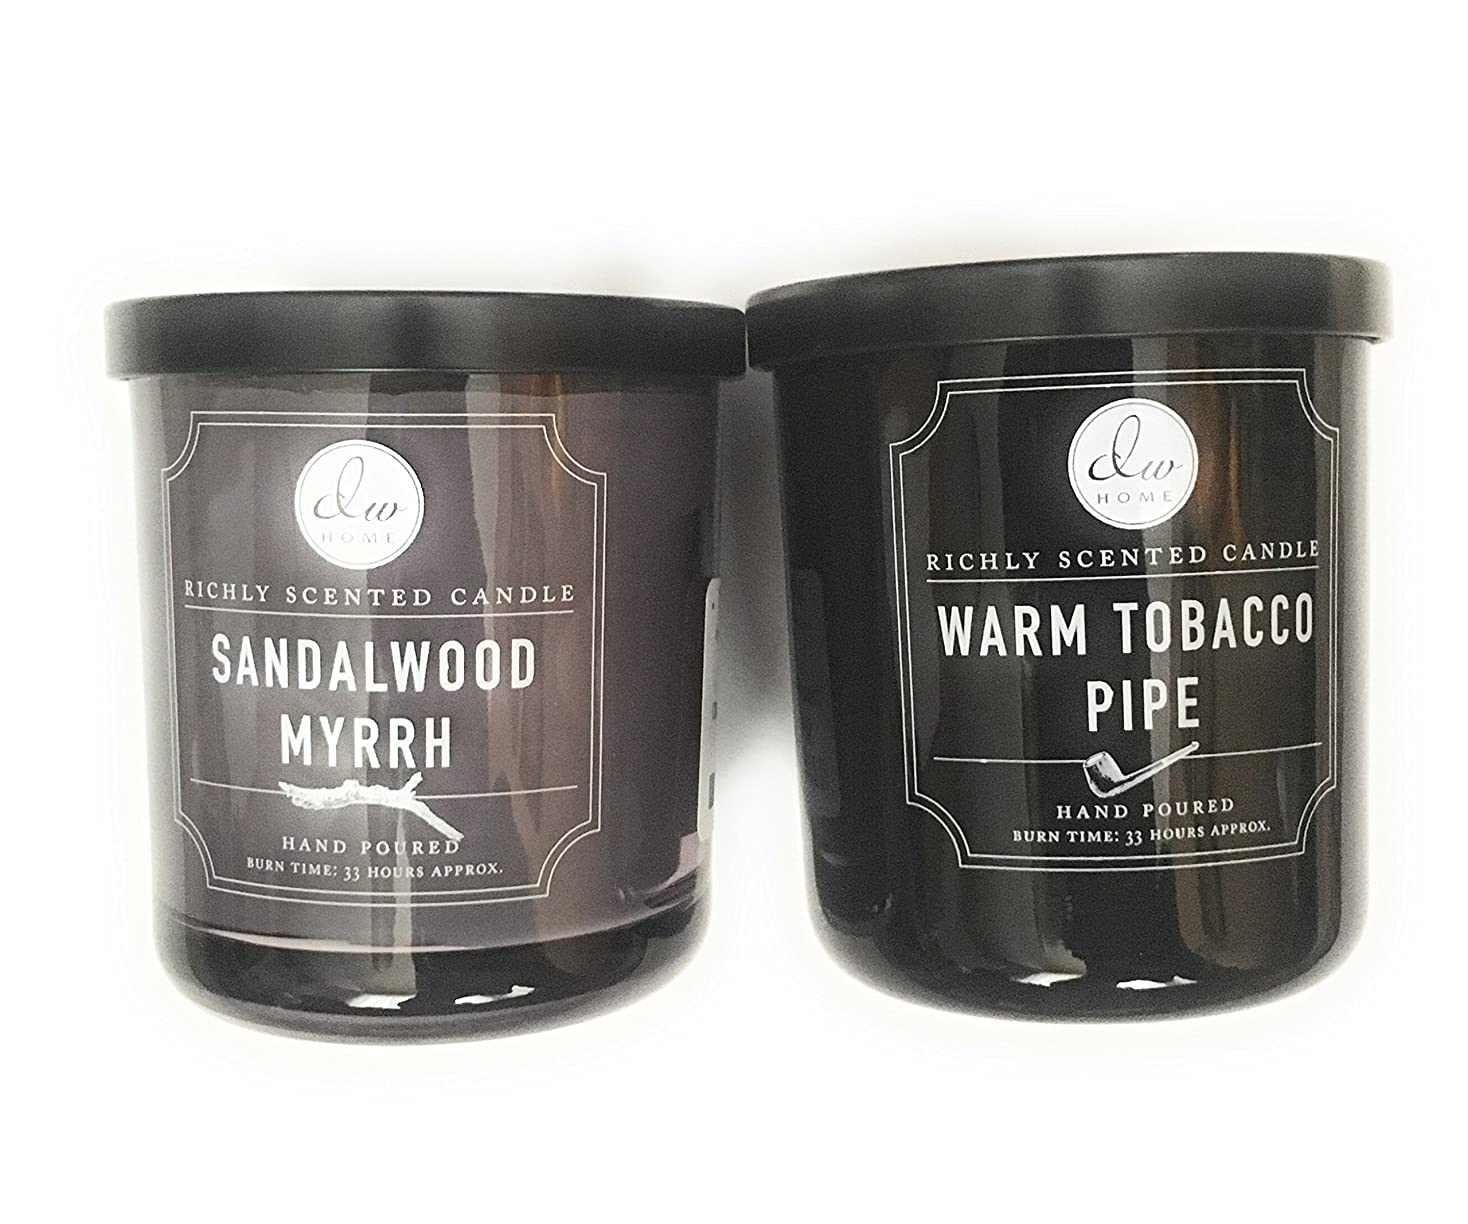 大混乱ありそう時代遅れDW Home Candle Bundle with a Warm Tobacco Pipe (290ml) Candle and a Sandalwood and Myrrh (290ml) Candle (2 items)